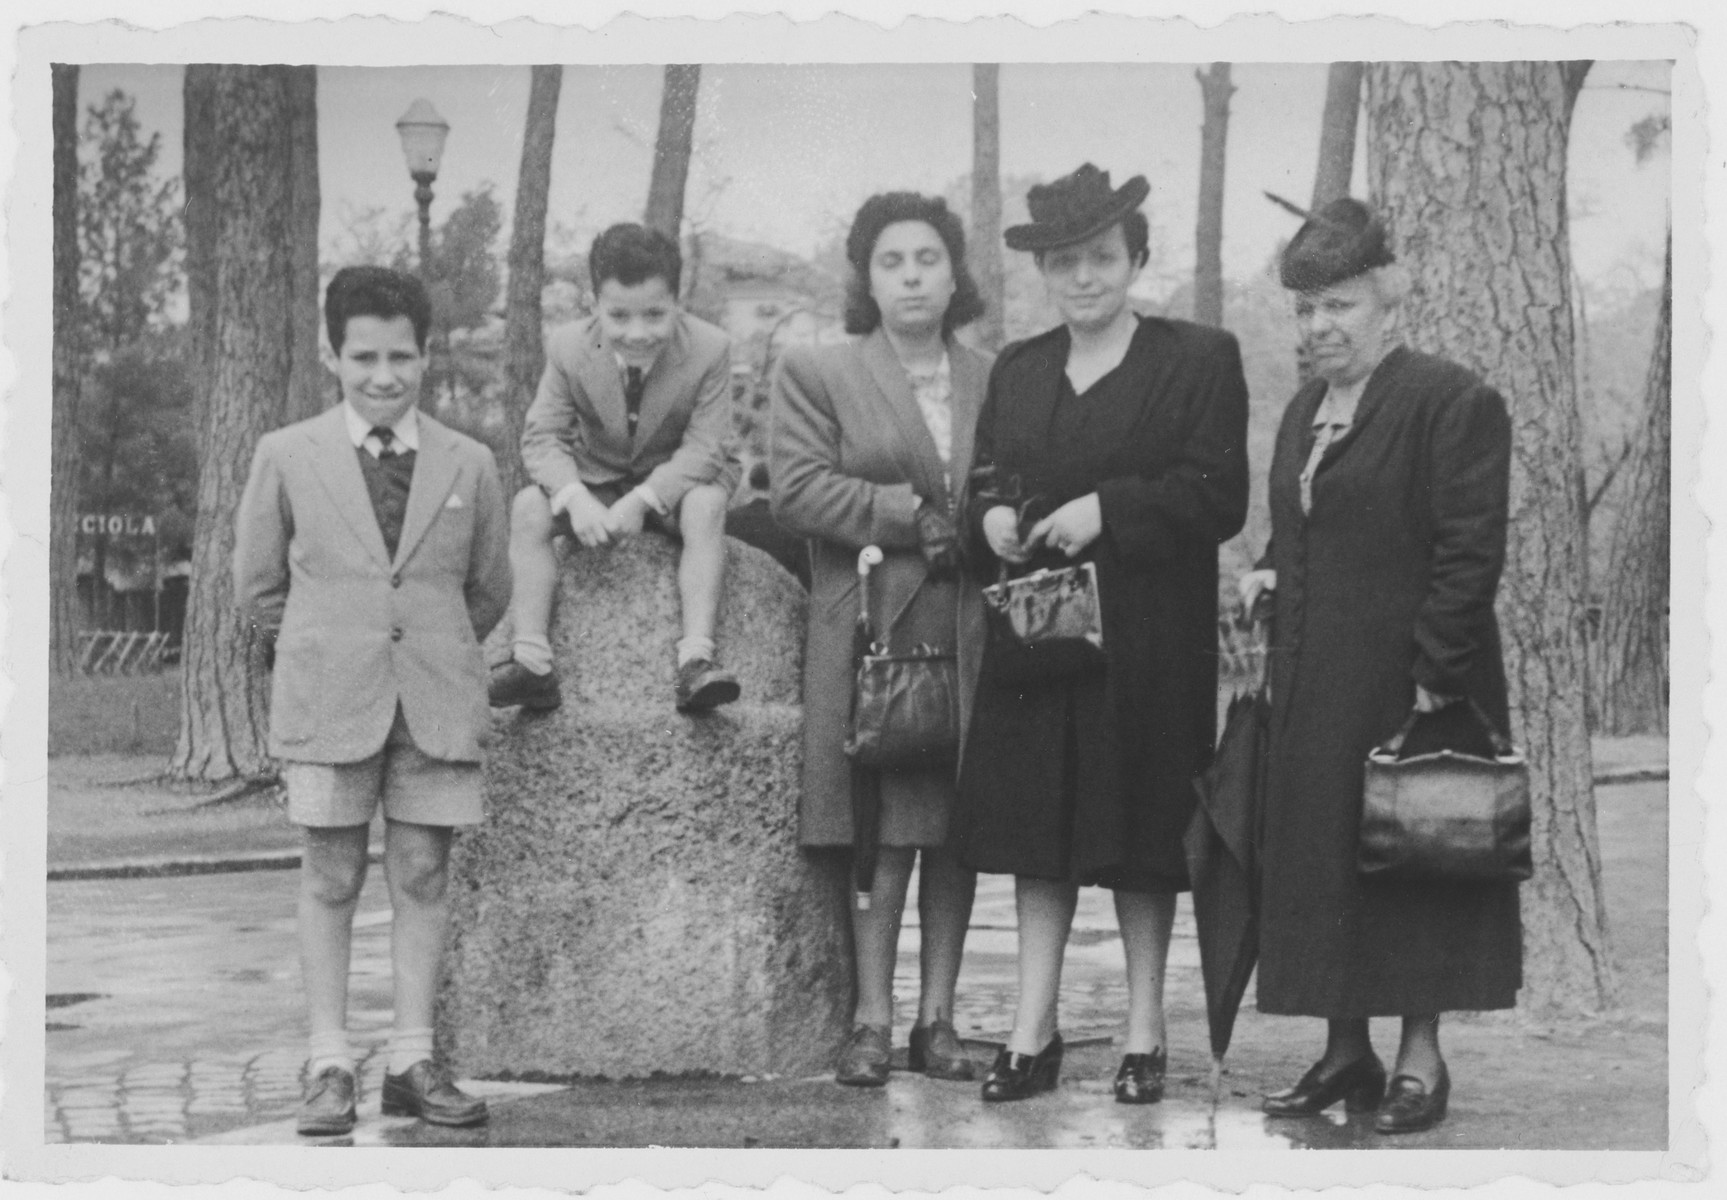 Members of the Tagliacozzo family pose together after the war.  From left to right are Nando,  David, and Lina Tagliacozzo, Titti Zarfatti, and Lina's mother, Judita Zarfatti.